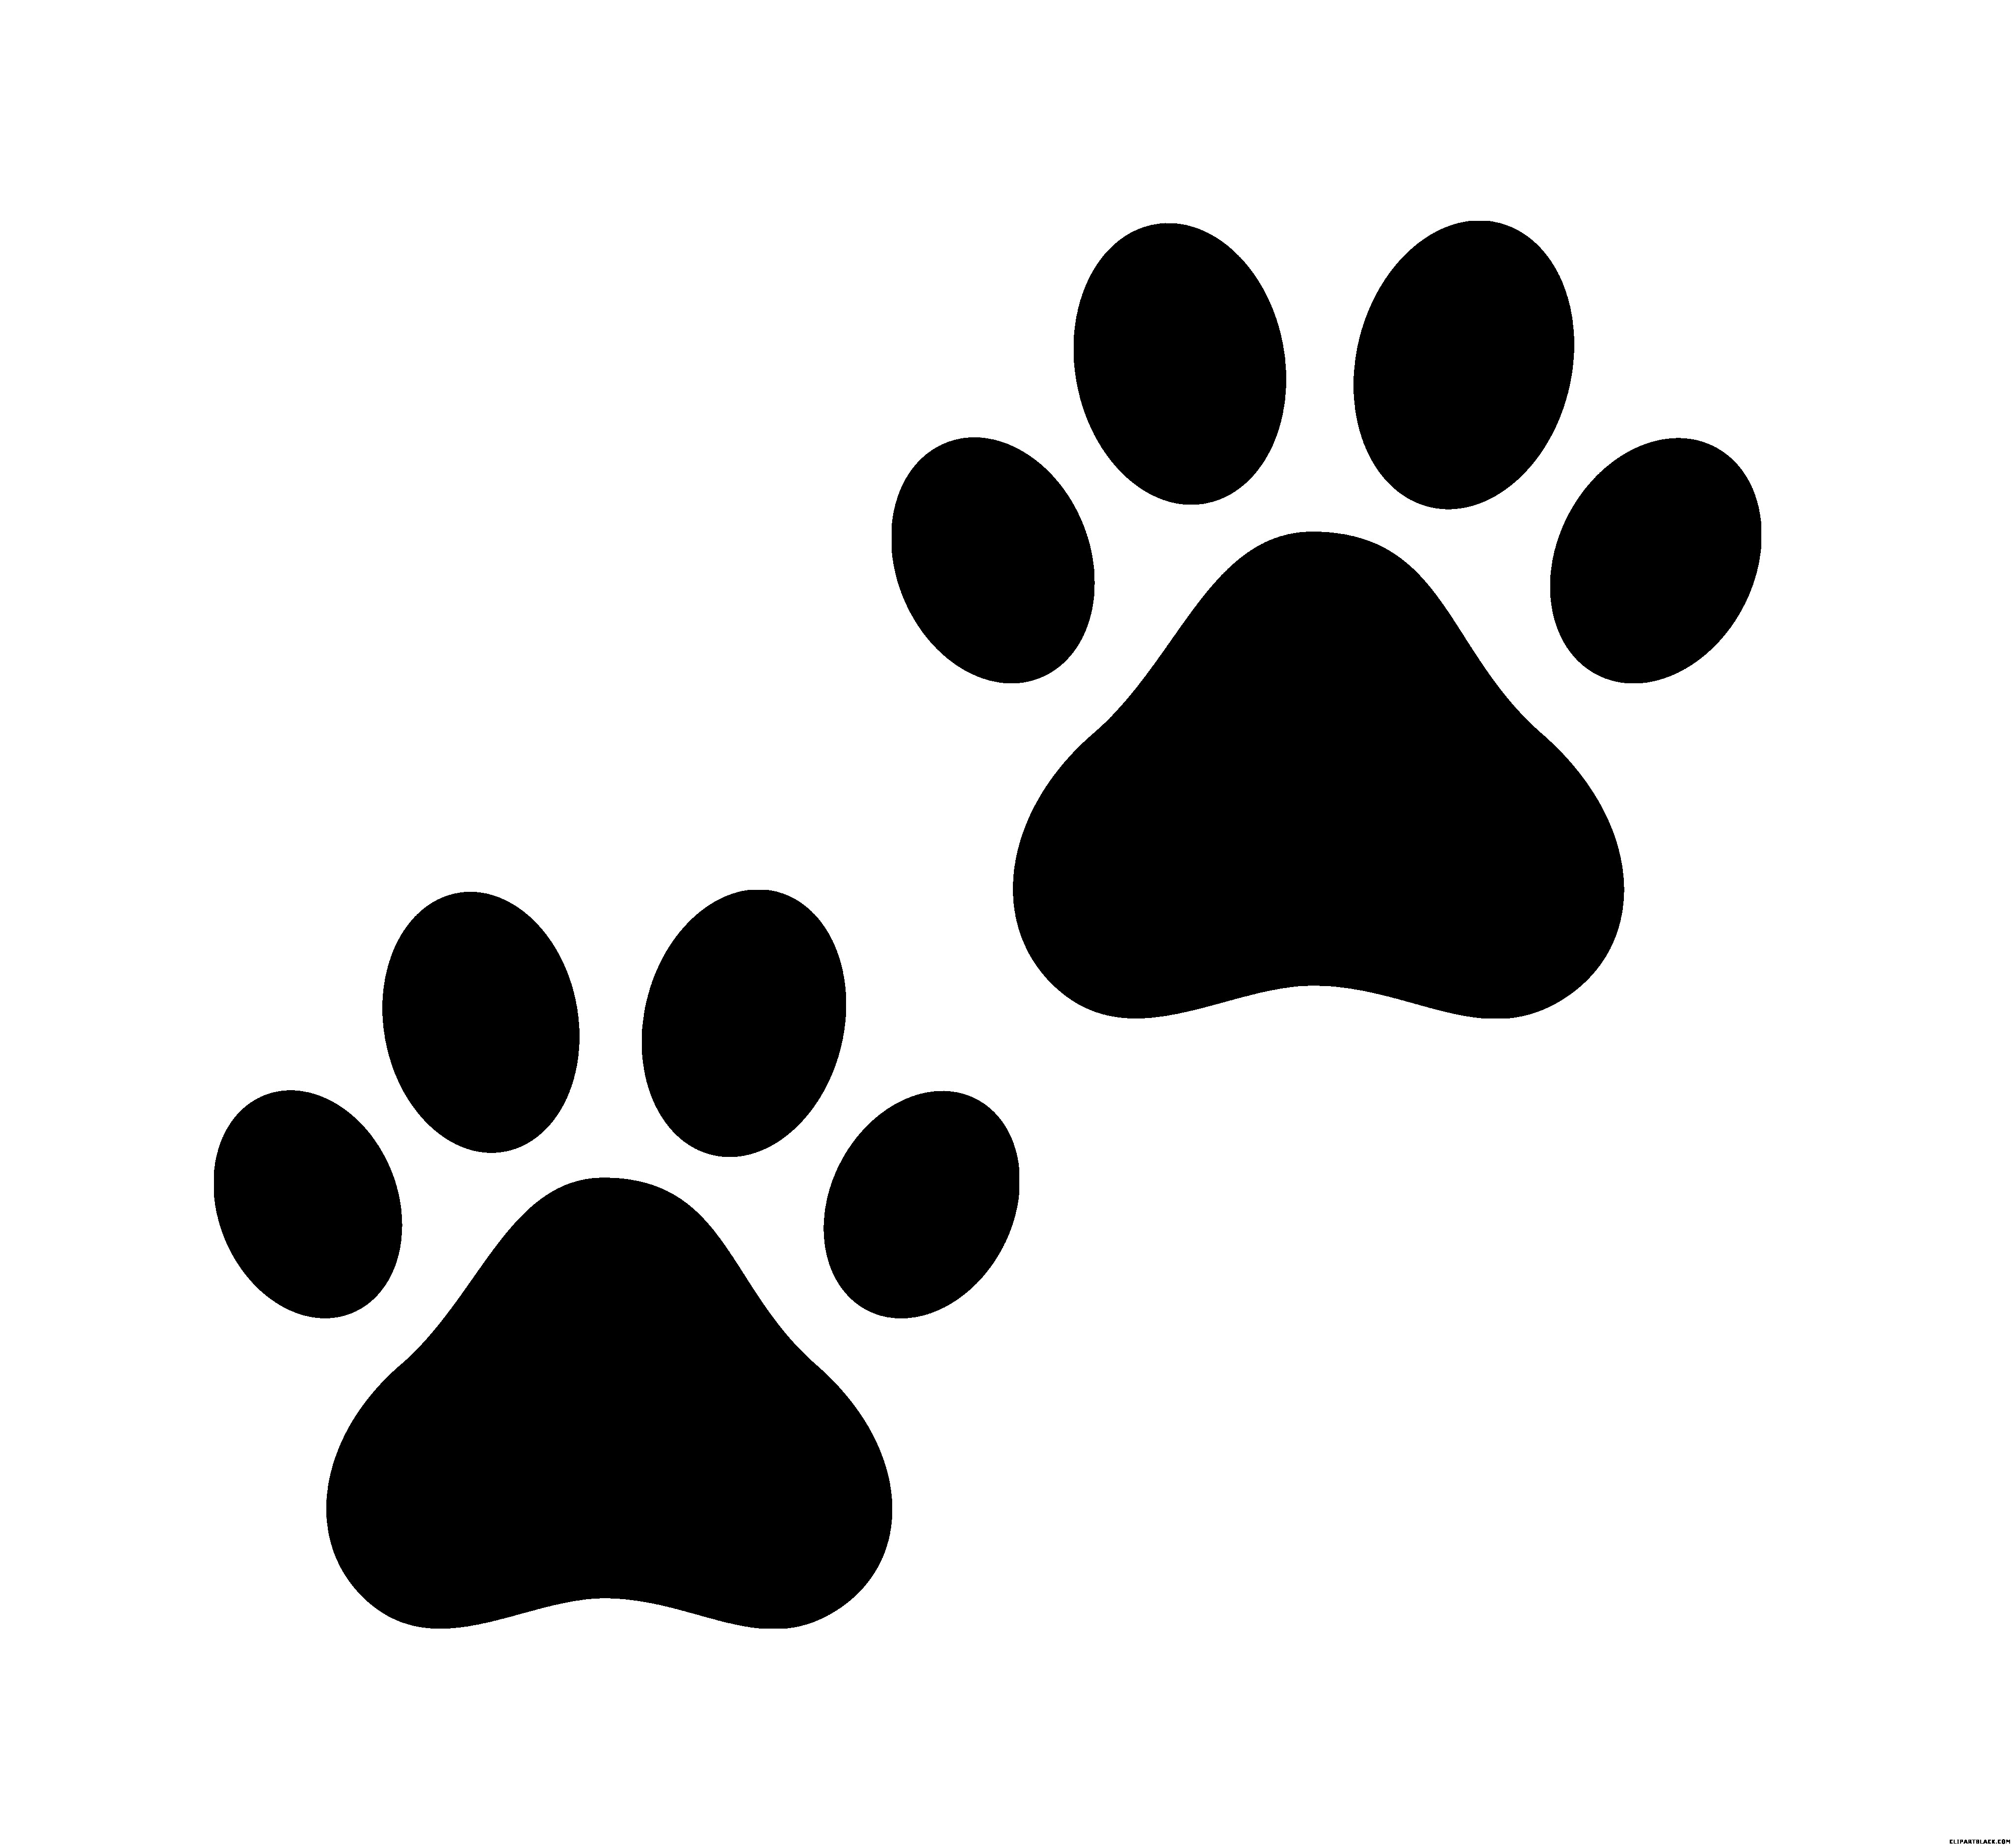 White dog paw print clipart vector black and white download In Cat Paw Print Clipart Black And White Dog 11 | Clip Art vector black and white download